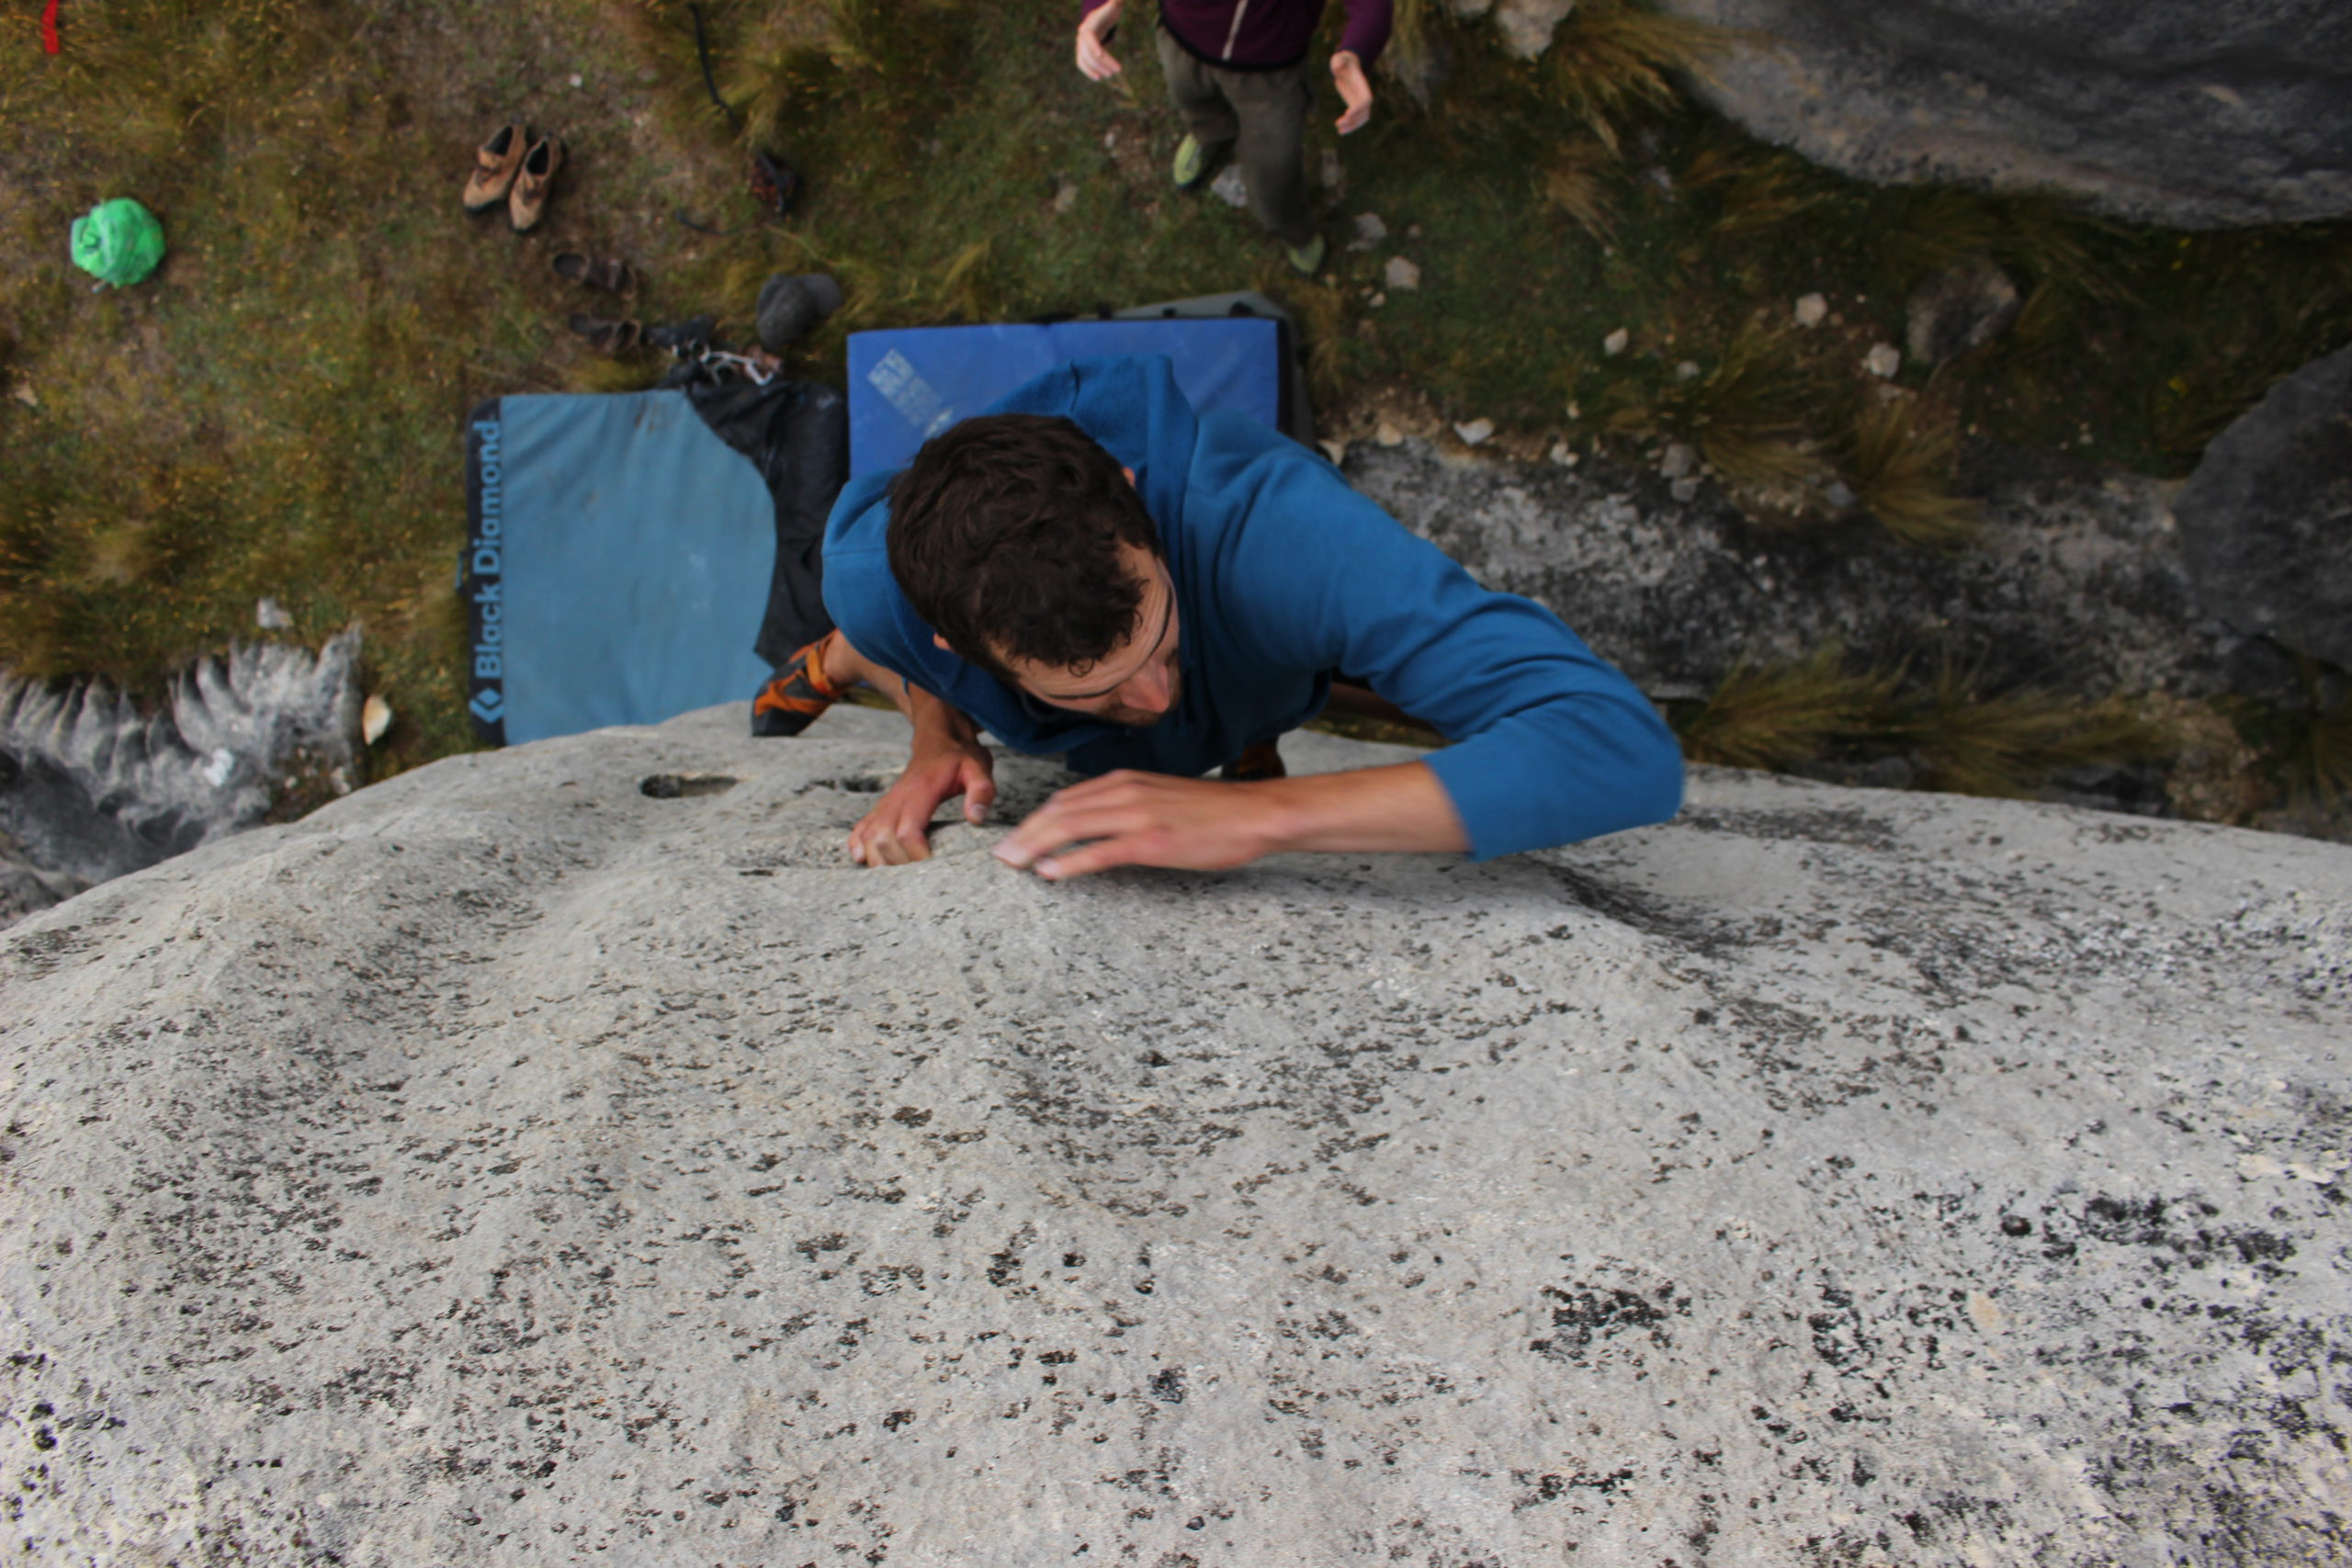 Climbing, surfing, and curiosity in Christchurch, NZ